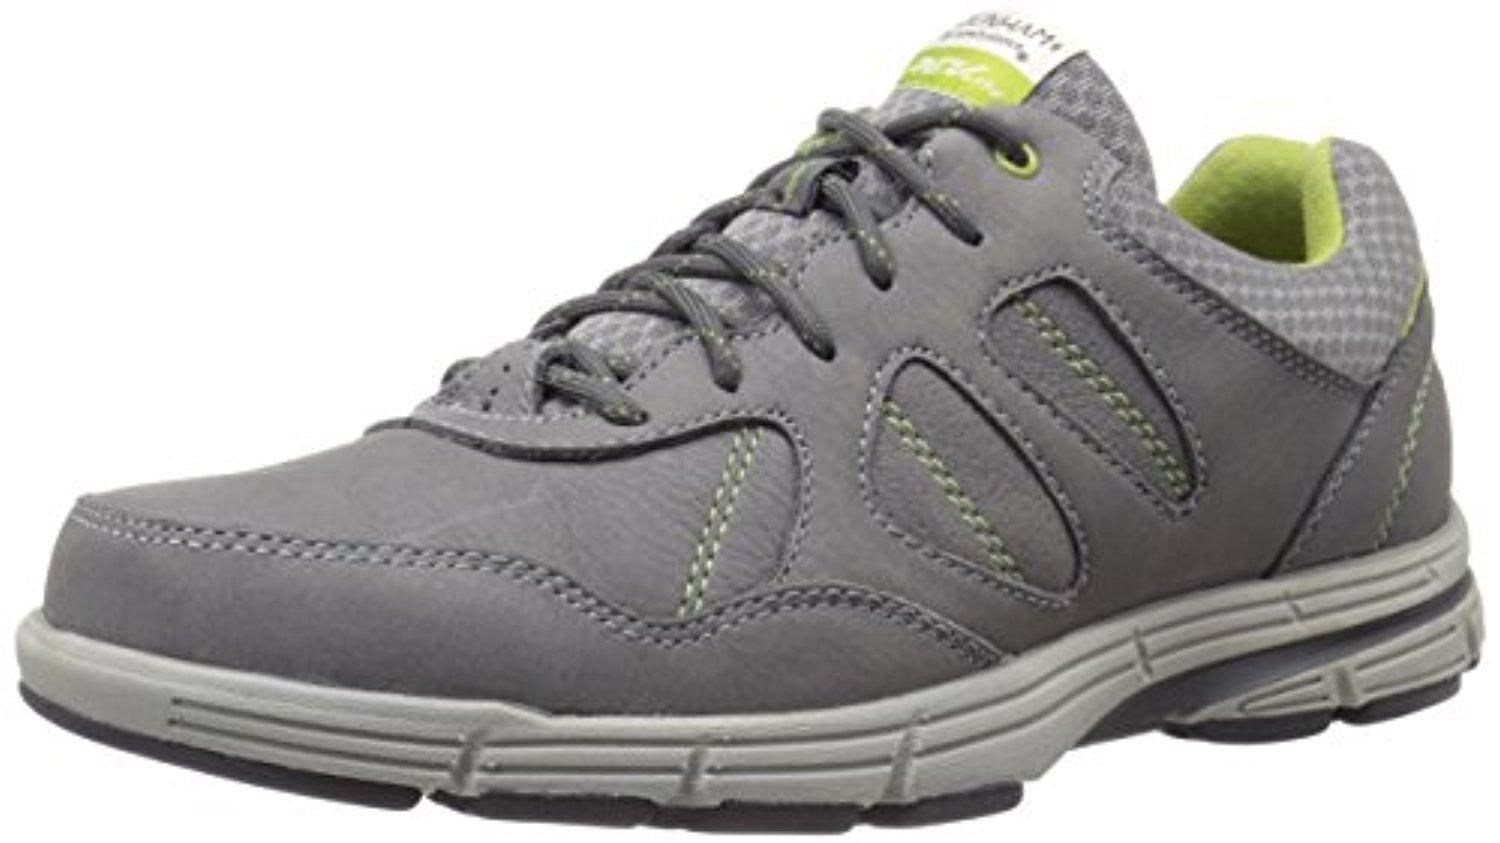 Dunham Men's Revsharp Oxford - Brought to you by Avarsha.com